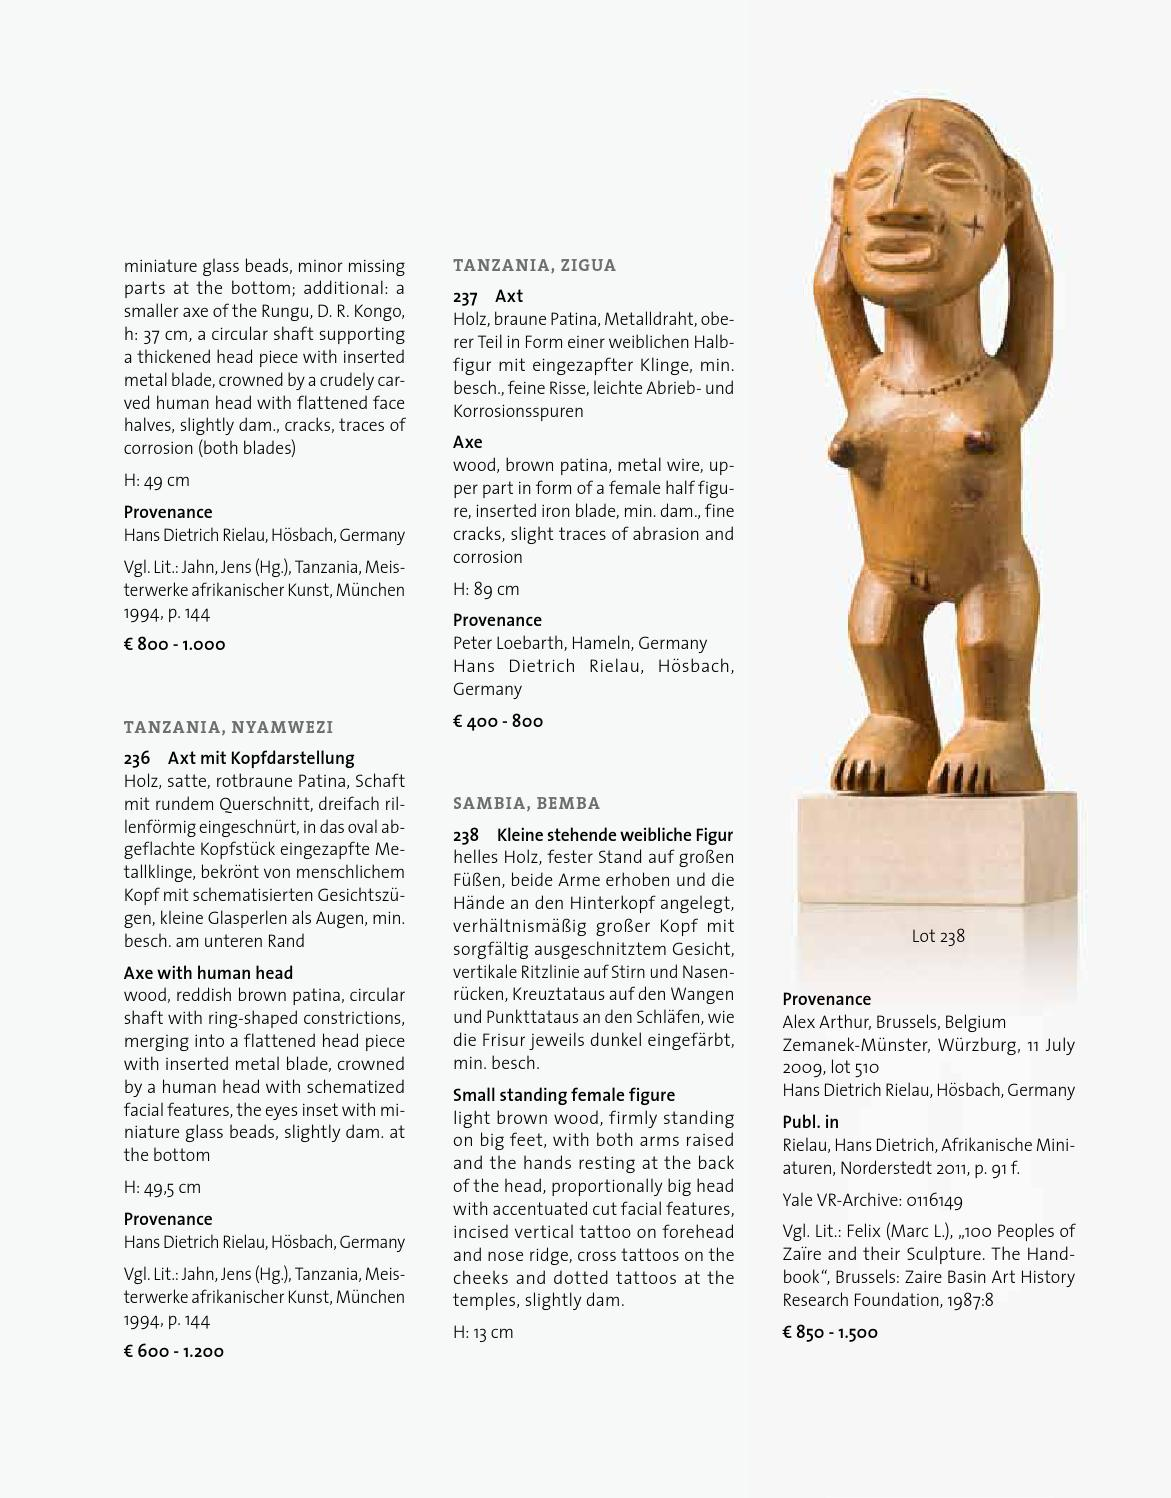 82 tribal art auction - 27 February 2016 - starting at 2 pm CET by ...